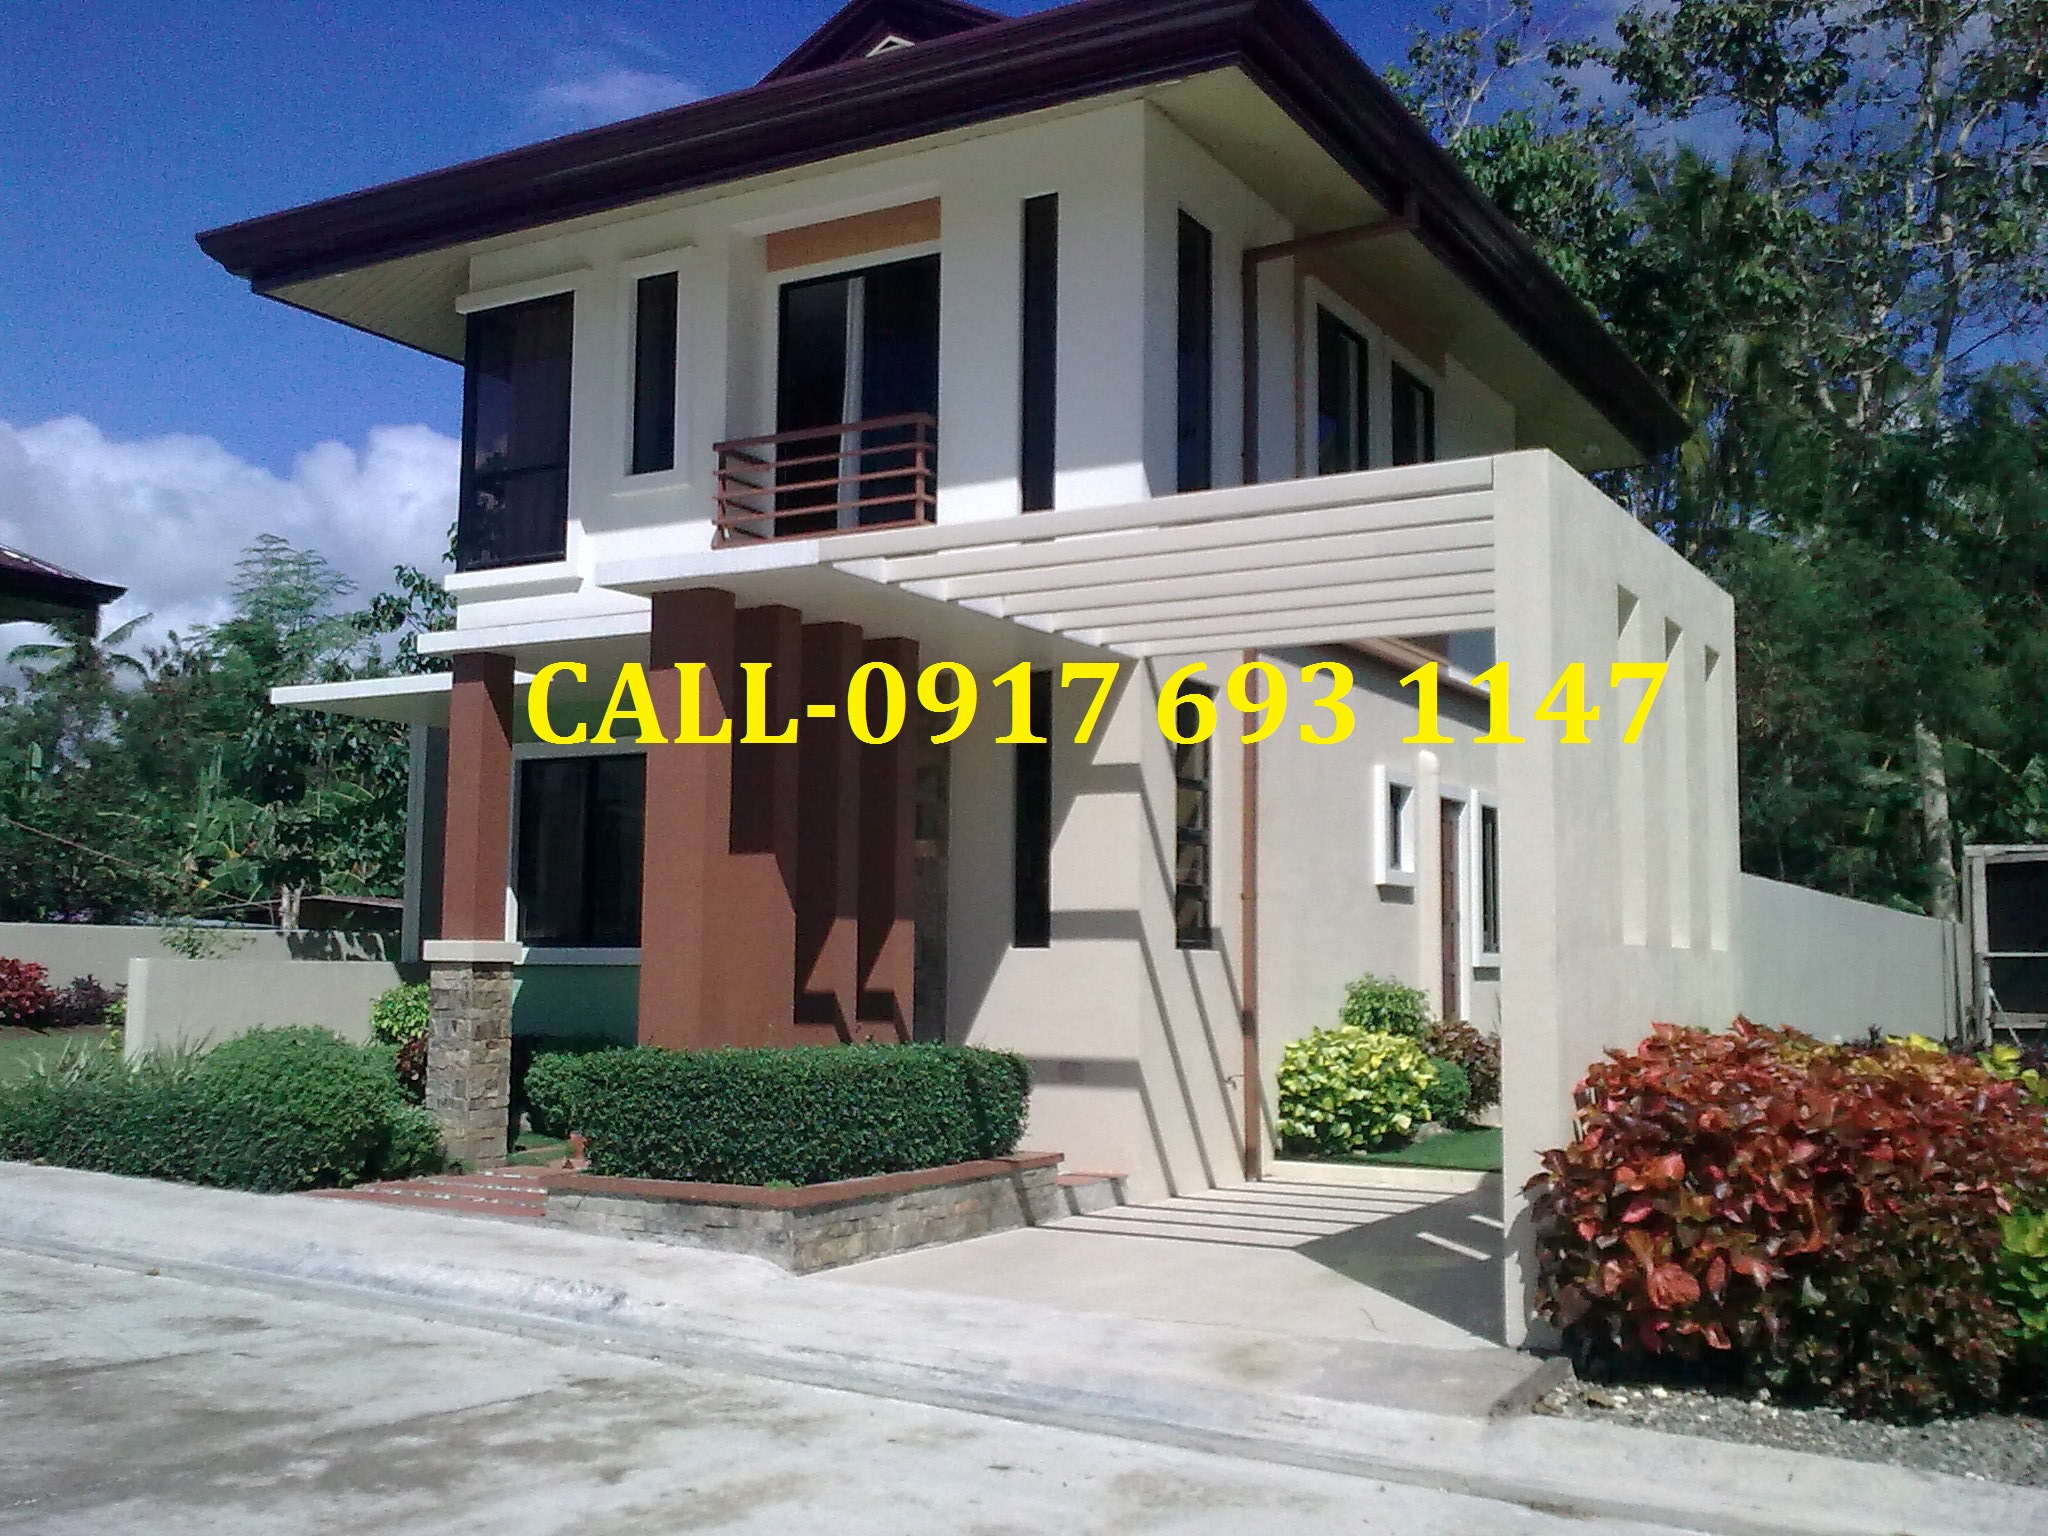 HOUSE MODELS  ( Sample Computation upon request ) 1.CHERIMOYA 2-storey Single Detached 3-BR, 2TB, 1-car garage Lot area: 142sqm ~ 158sqm Floor Area:80sqm Price: P3,597,640.00 ~ P3,716,360.00